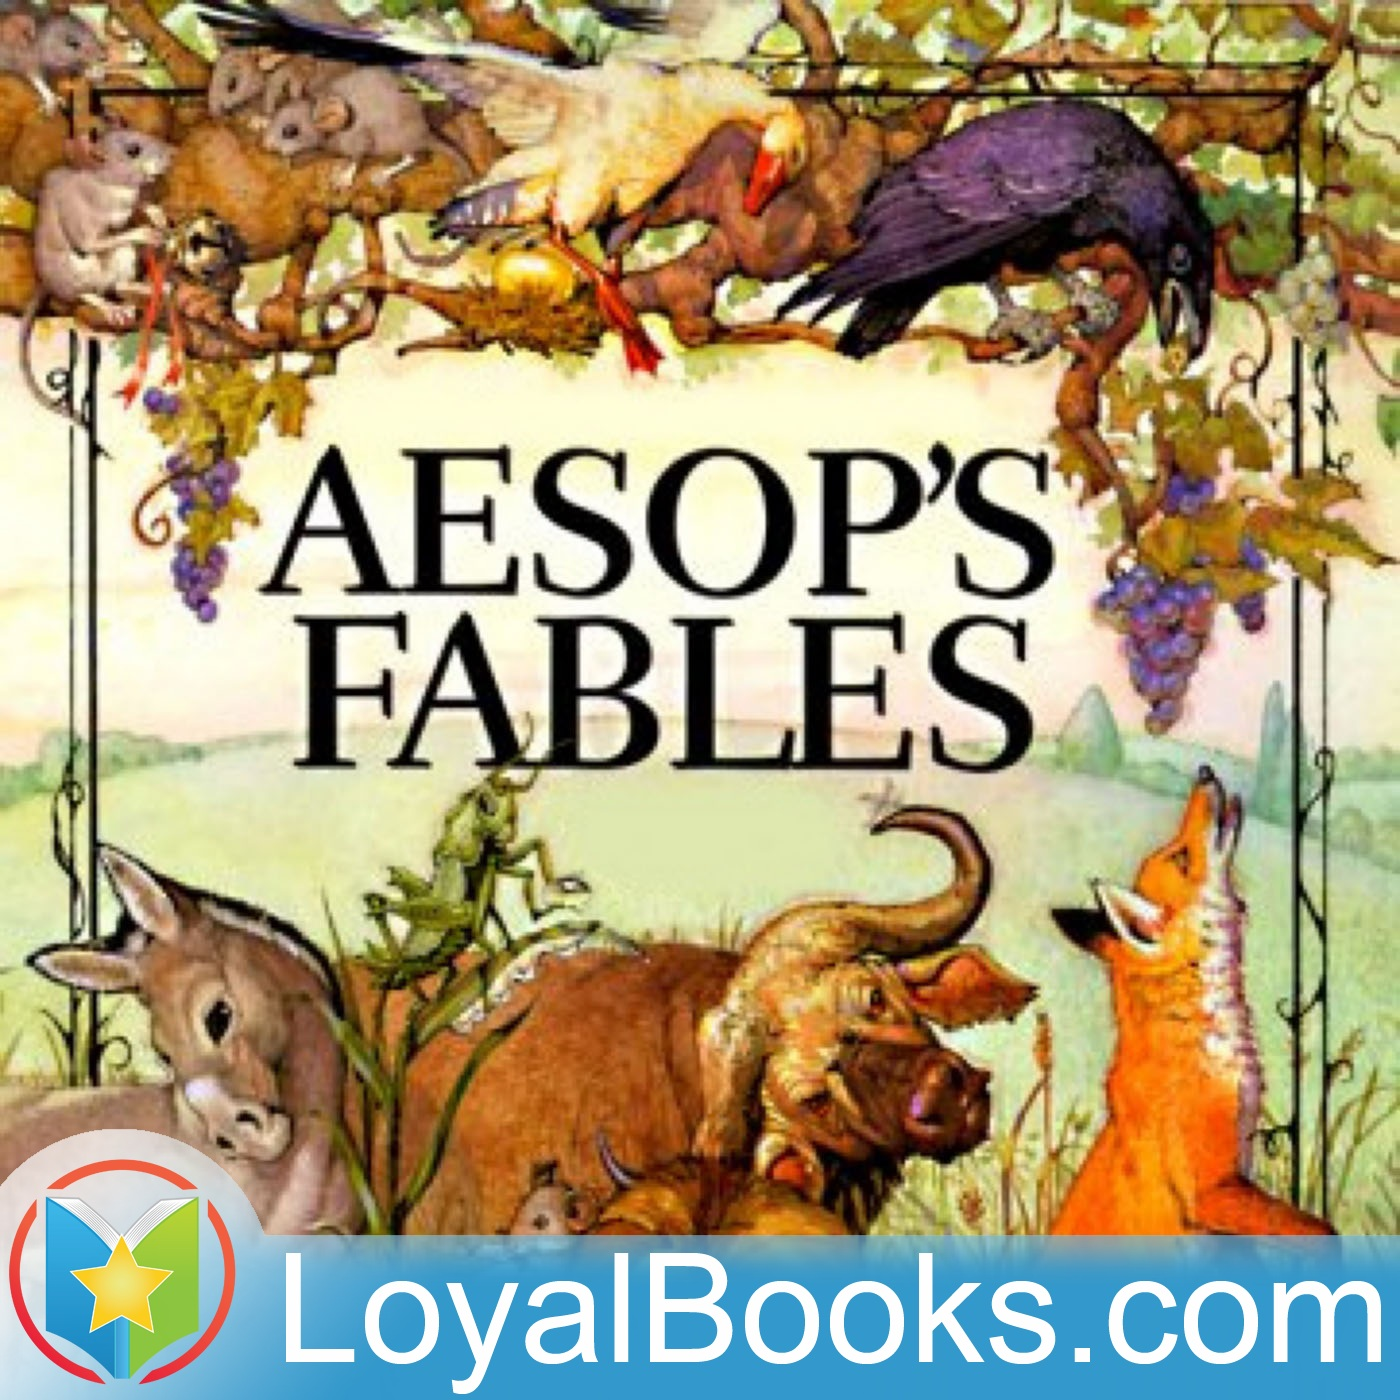 <![CDATA[Aesop's Fables by Aesop]]>